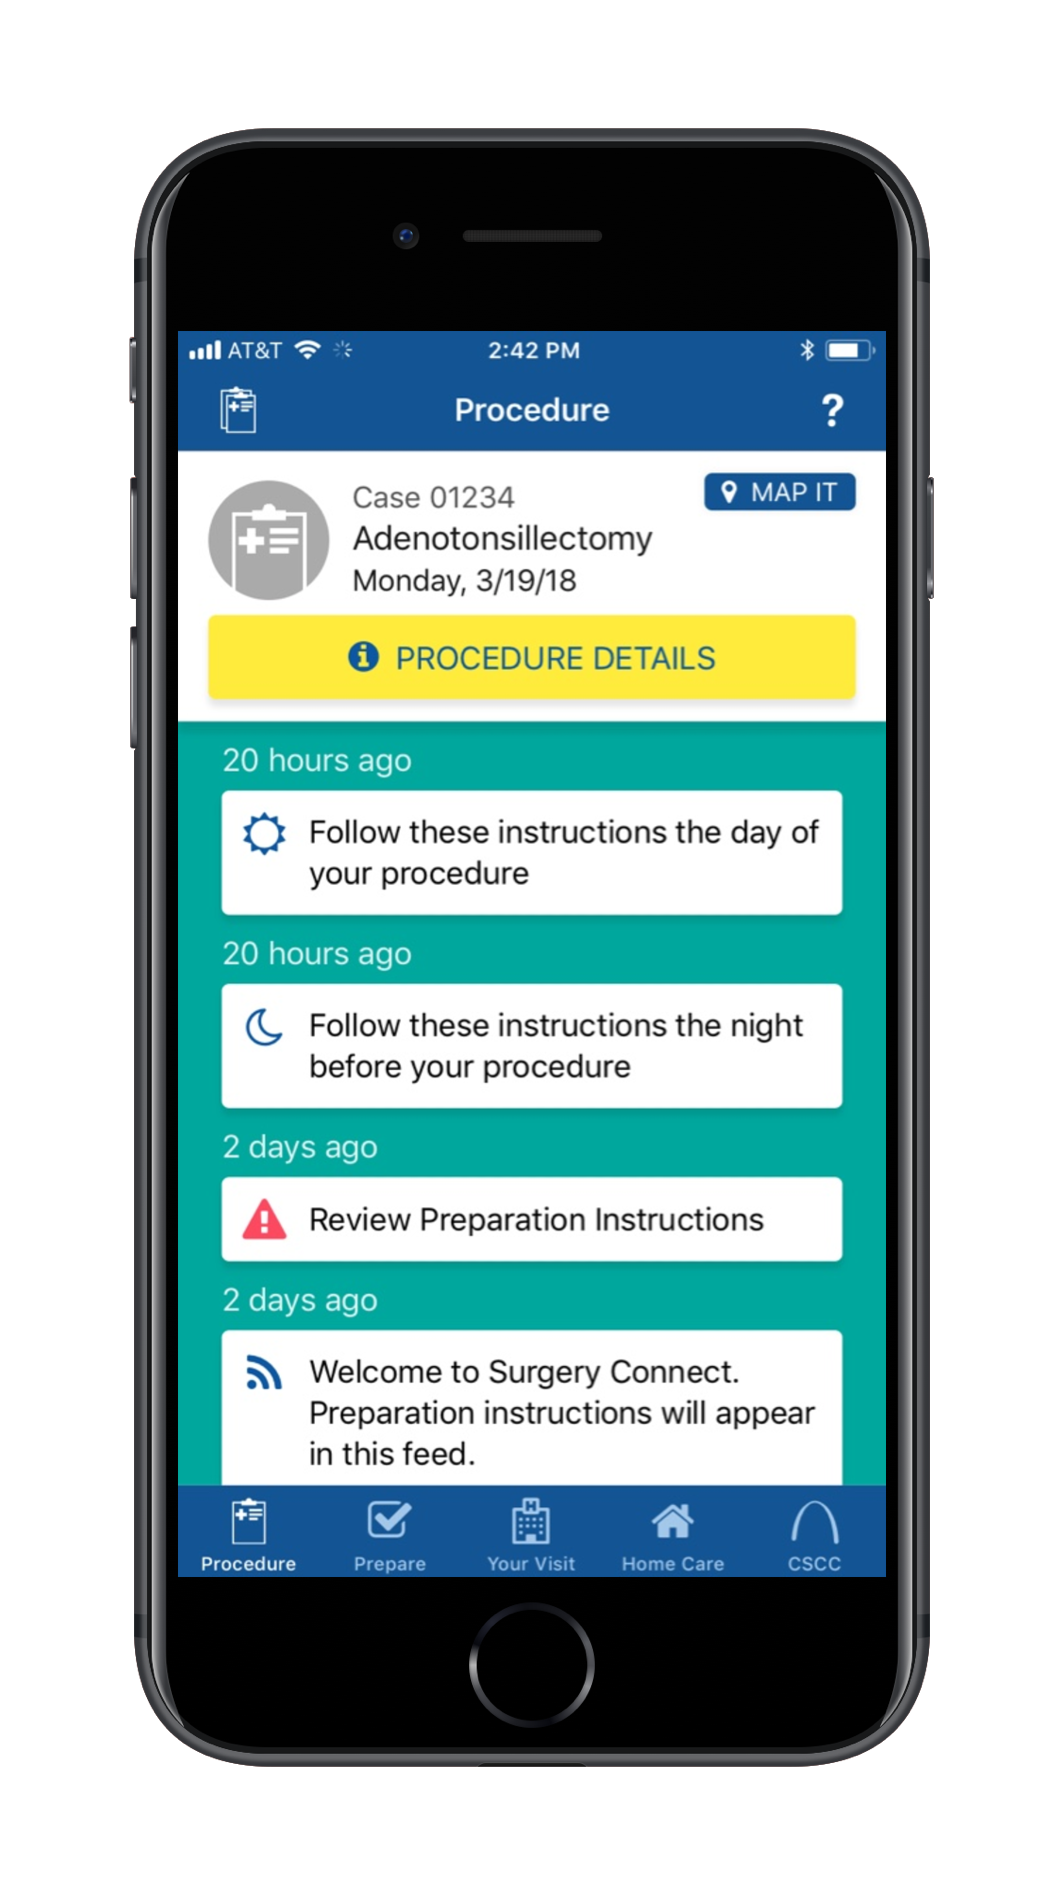 Screen cap of the Surgery Partner surgery app with information on a patient procedure and preparation instructions for the patient